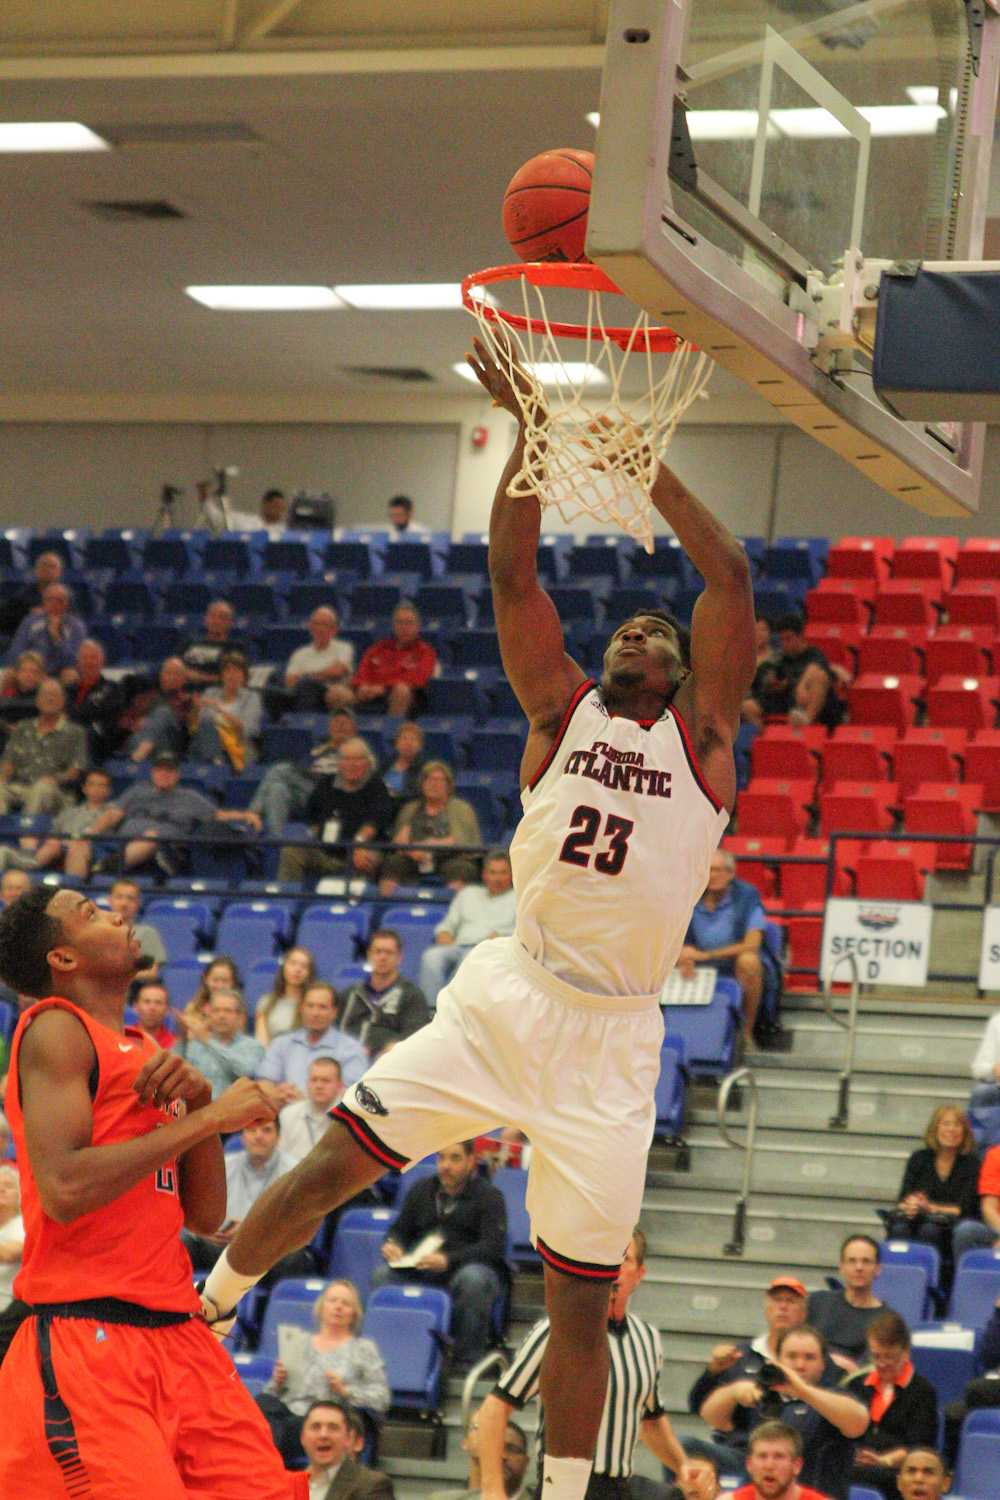 Solomon Poole (23) goes in for a shot during the game against UTEP.